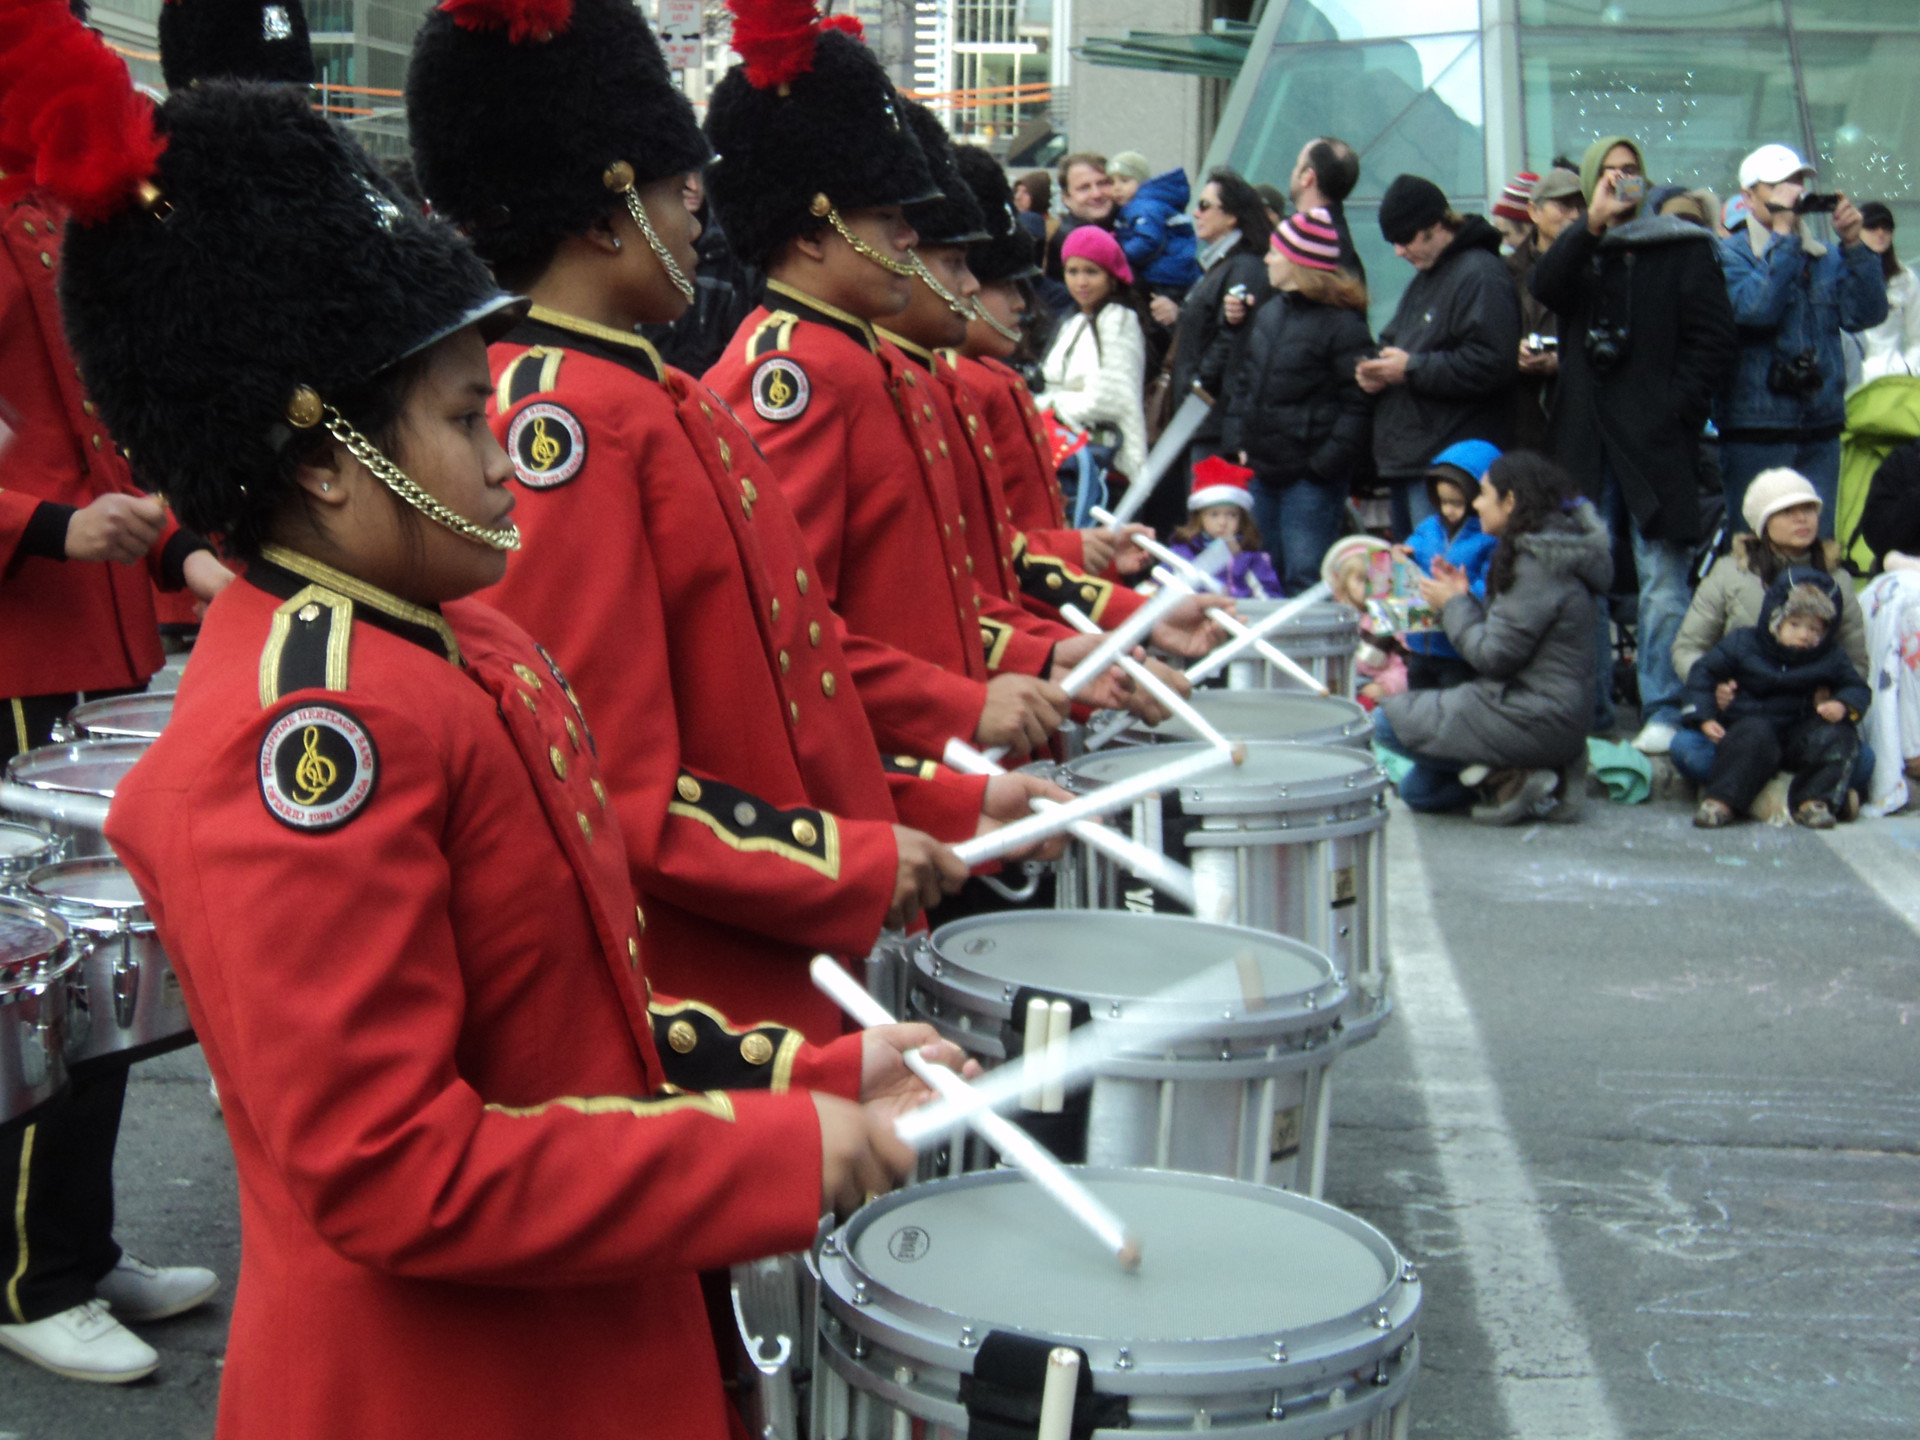 Snares in Action